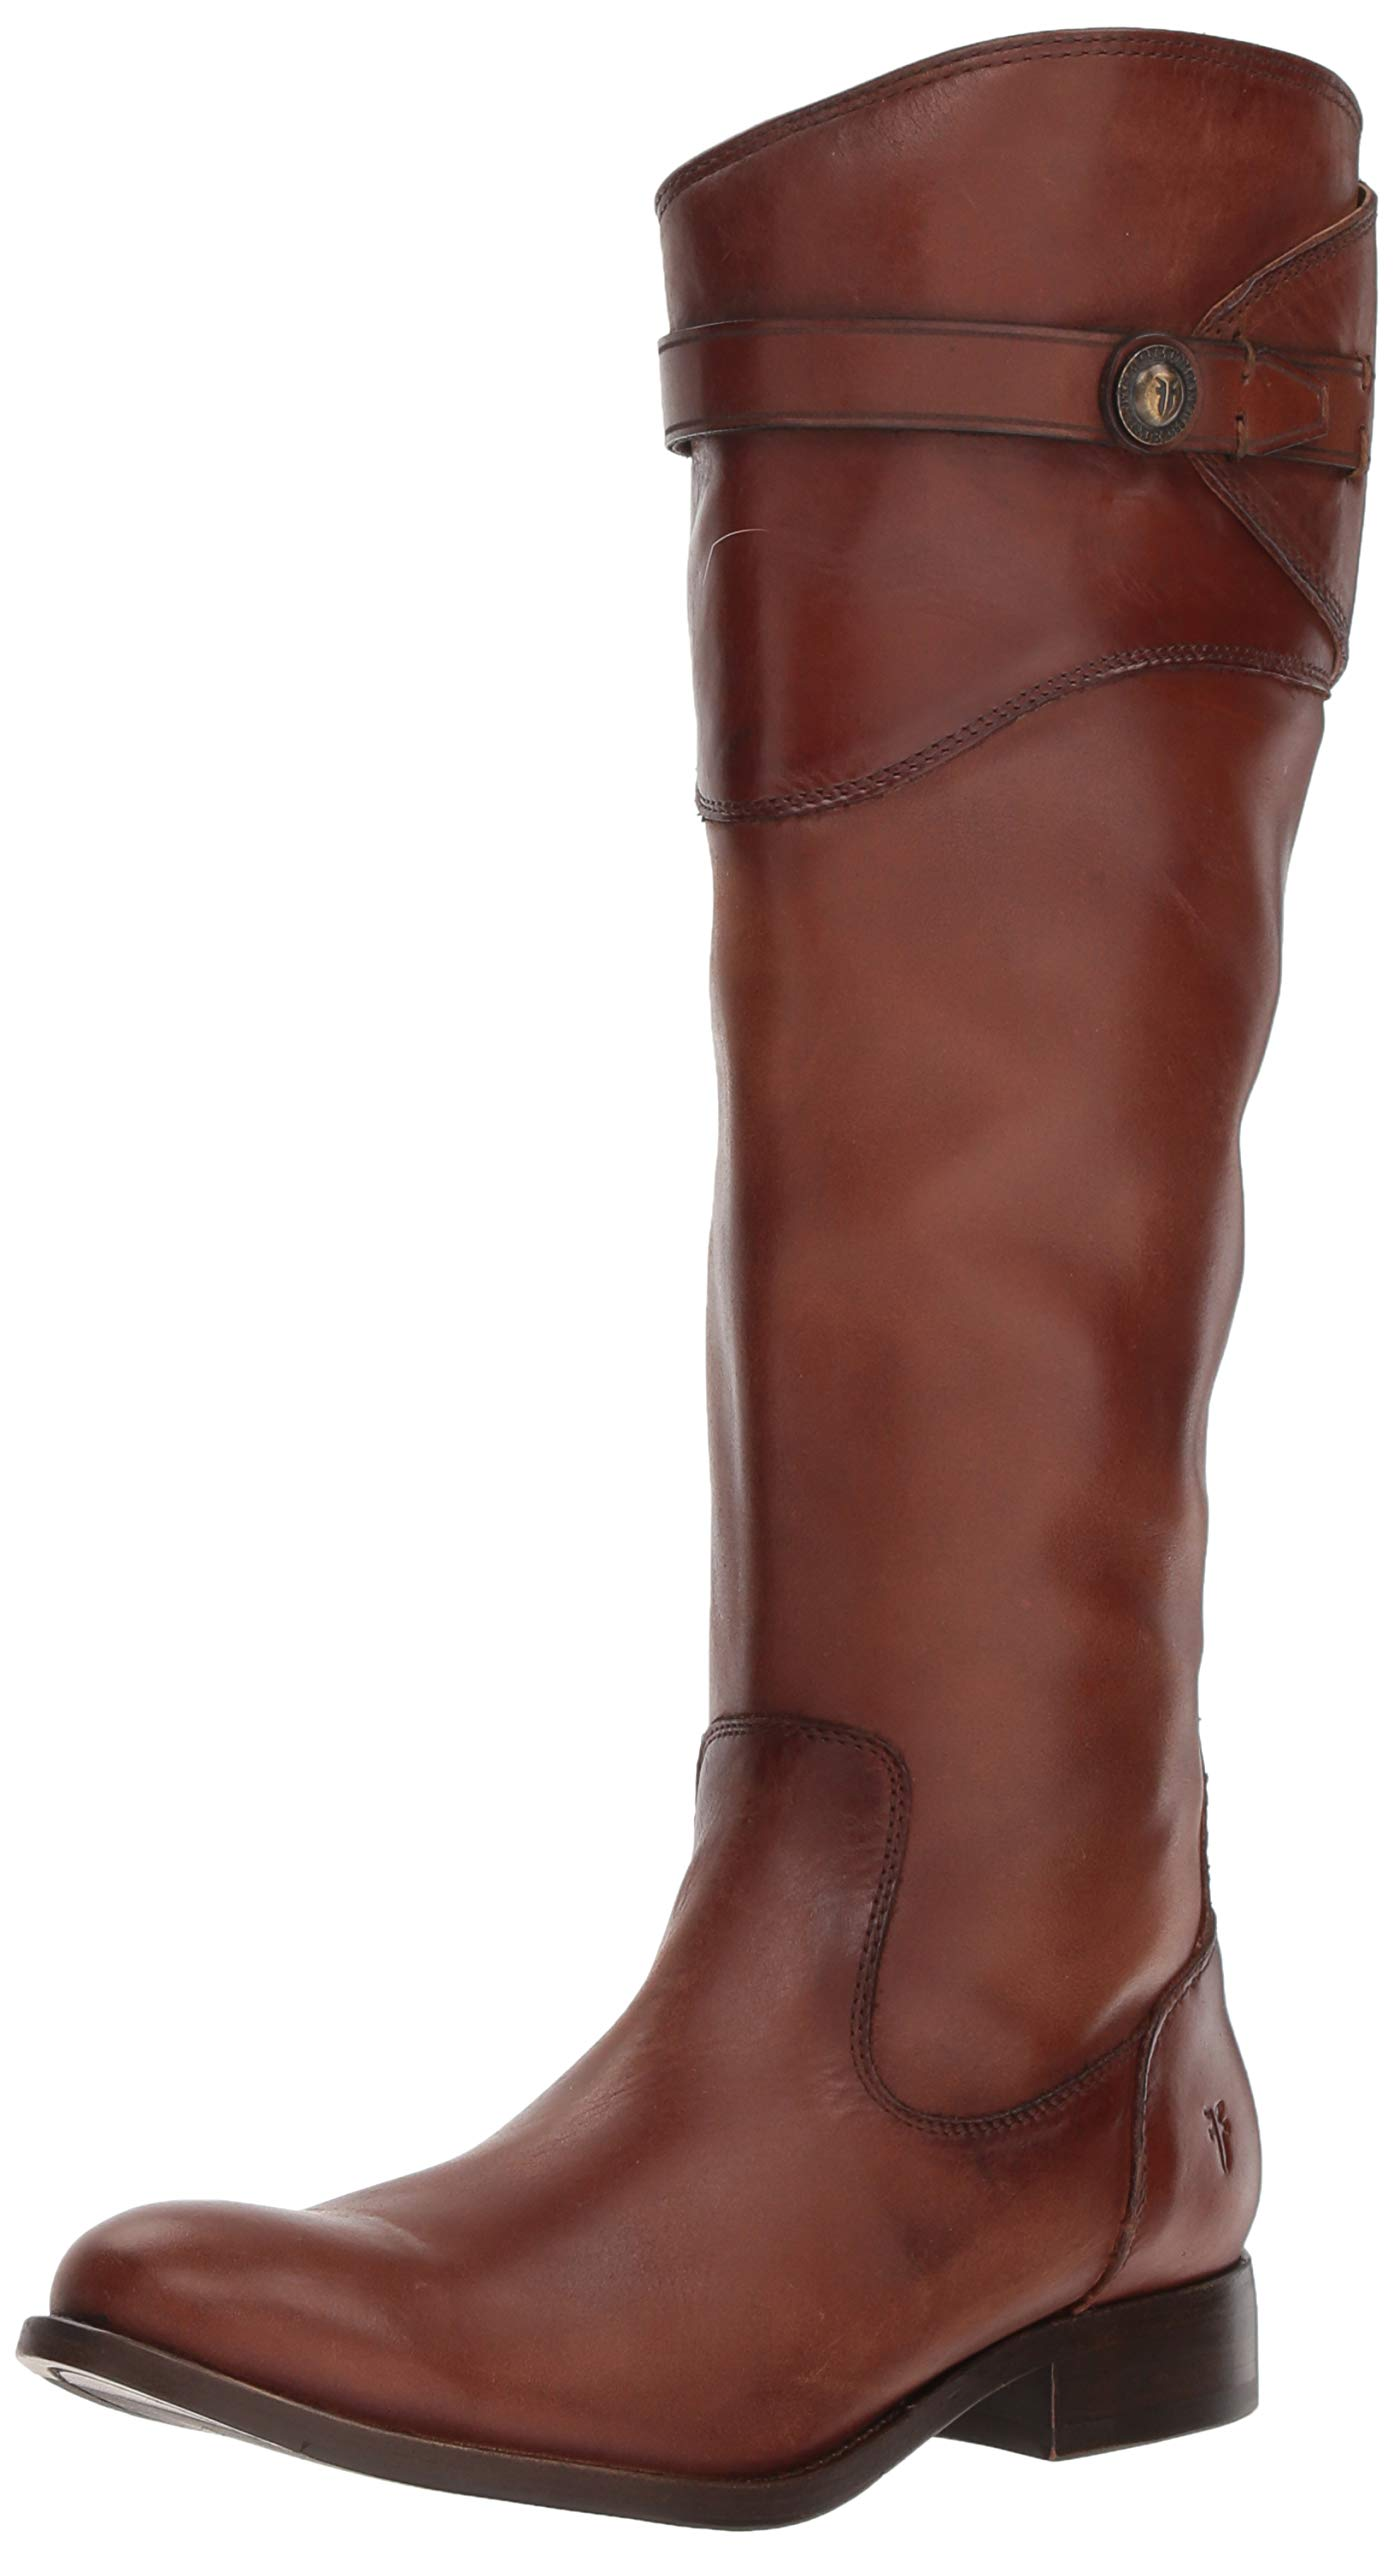 FRYE Women's Molly Button Tall Boot, Cognac, 9 M US by FRYE